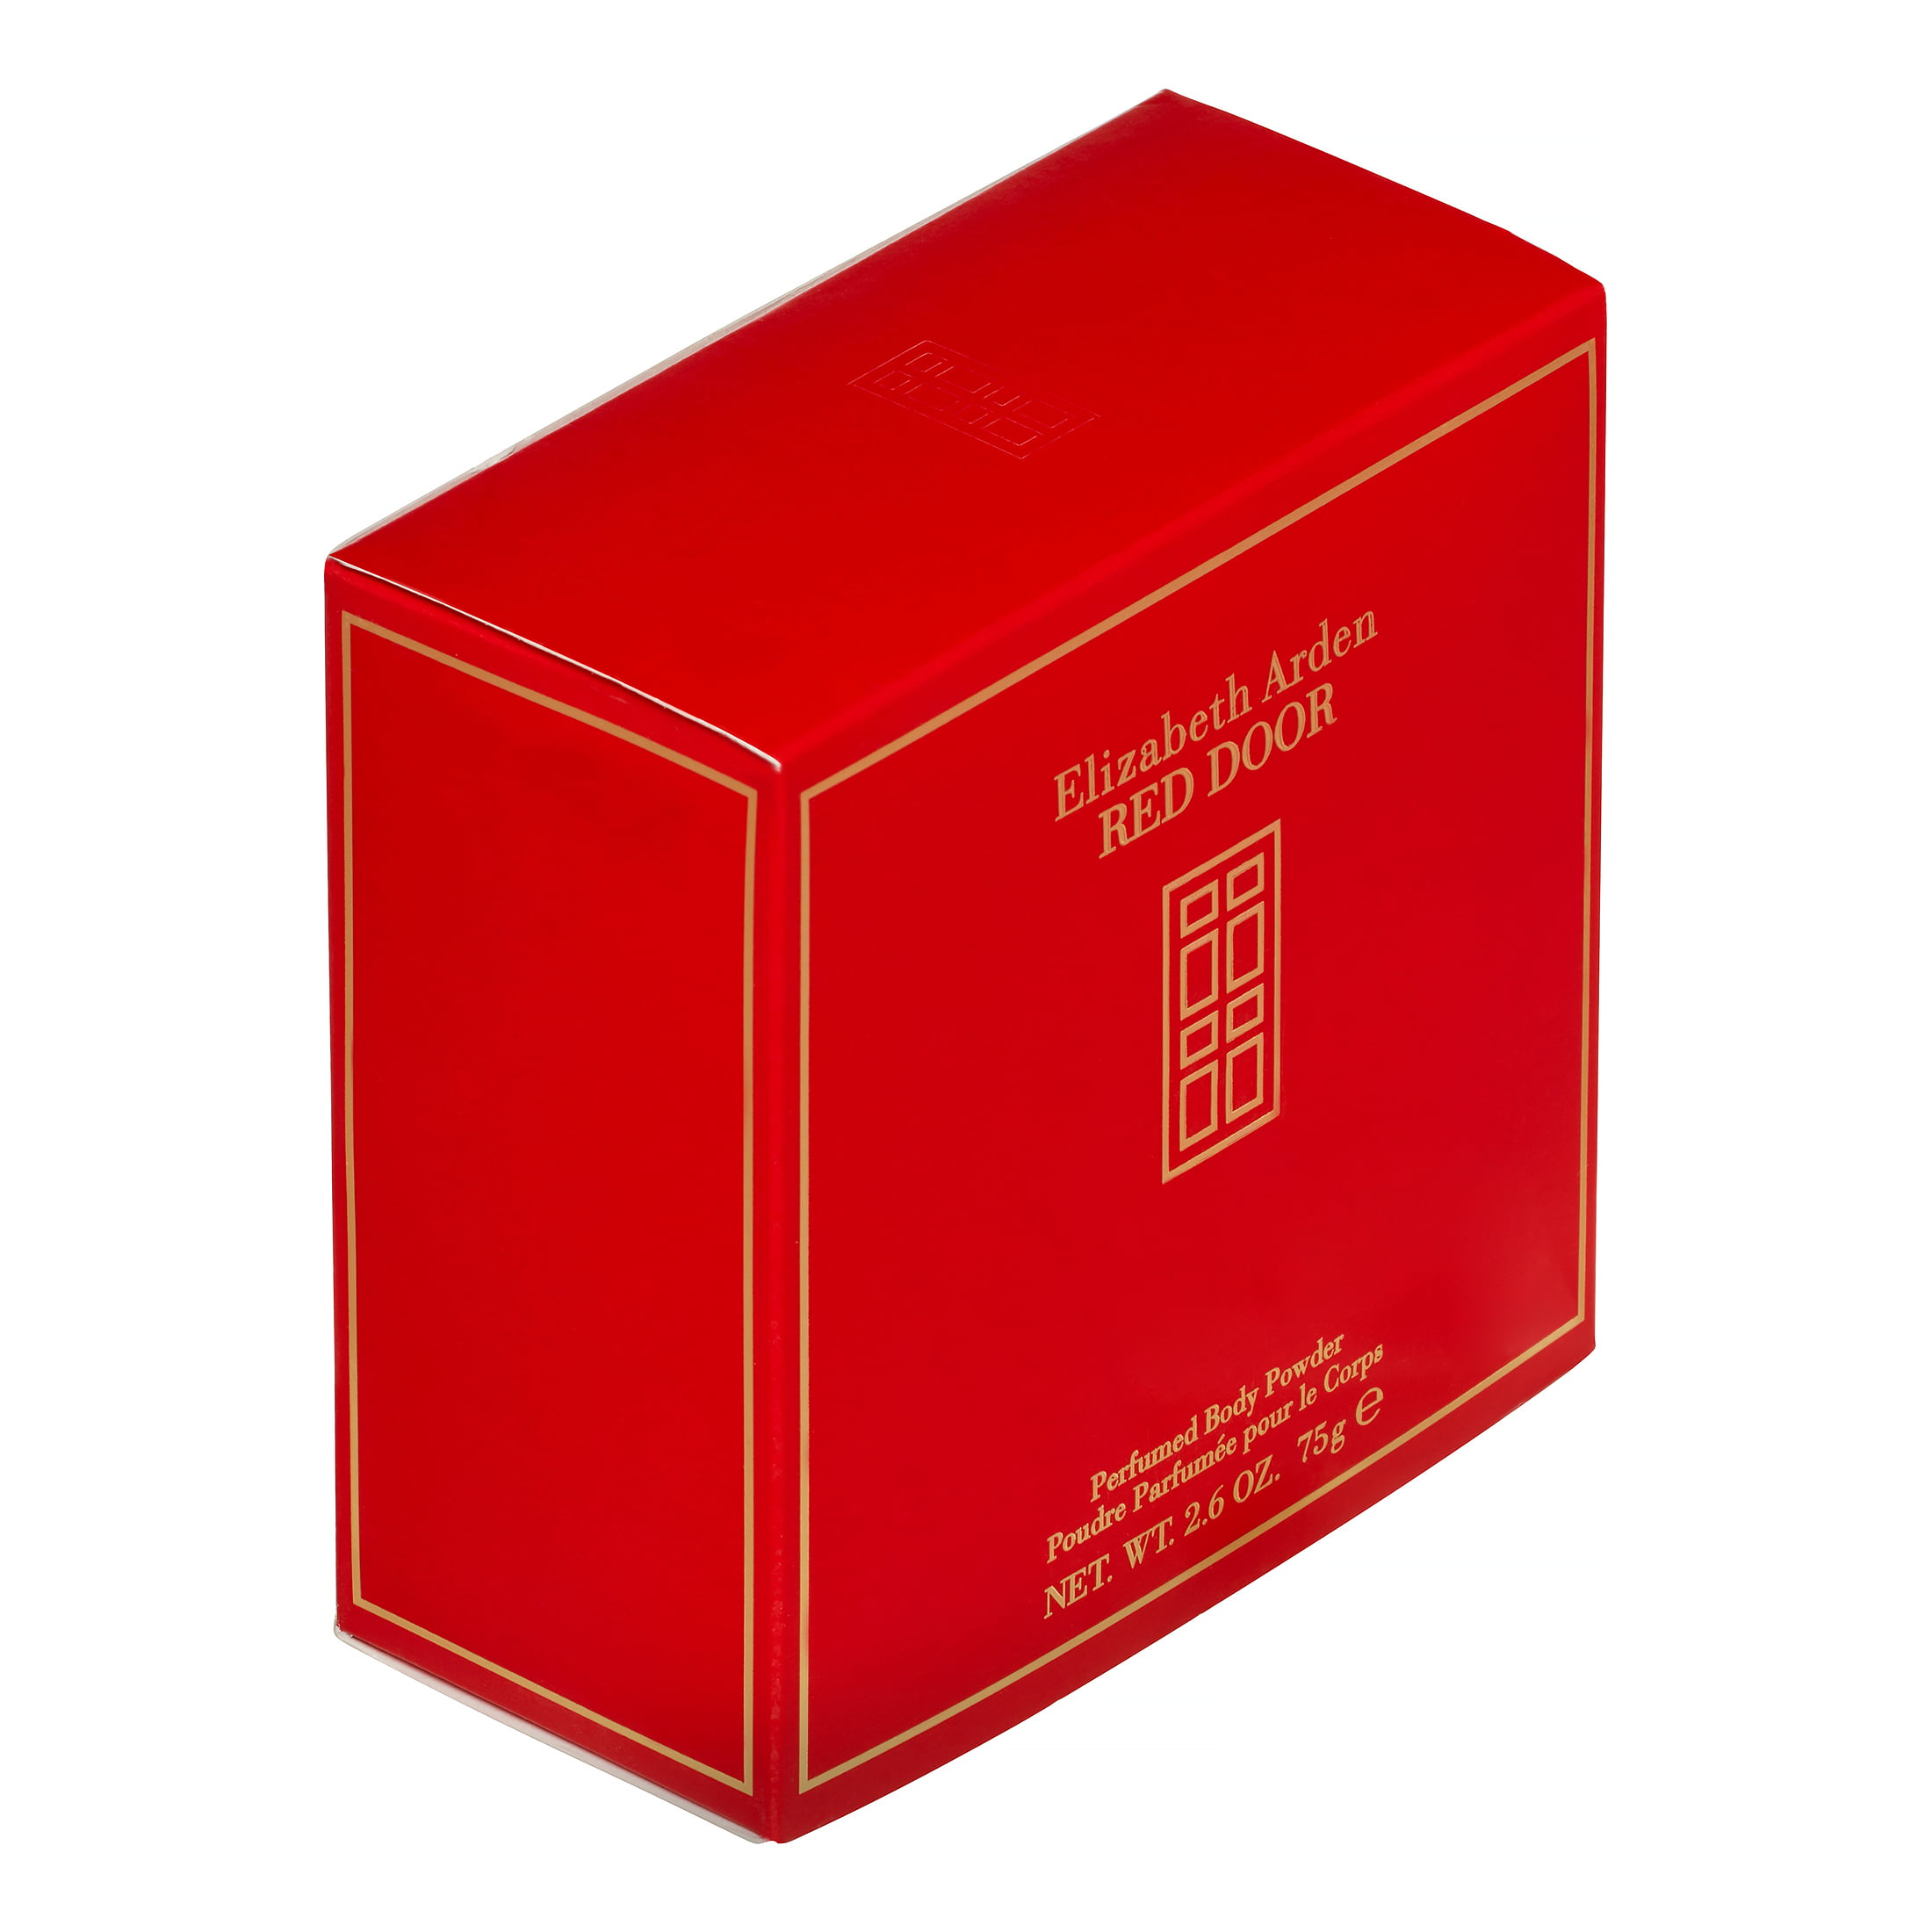 Elizabeth Arden   Elizabeth Arden Red Door Perfumed Body Powder, 2.6 Oz    Walmart.com